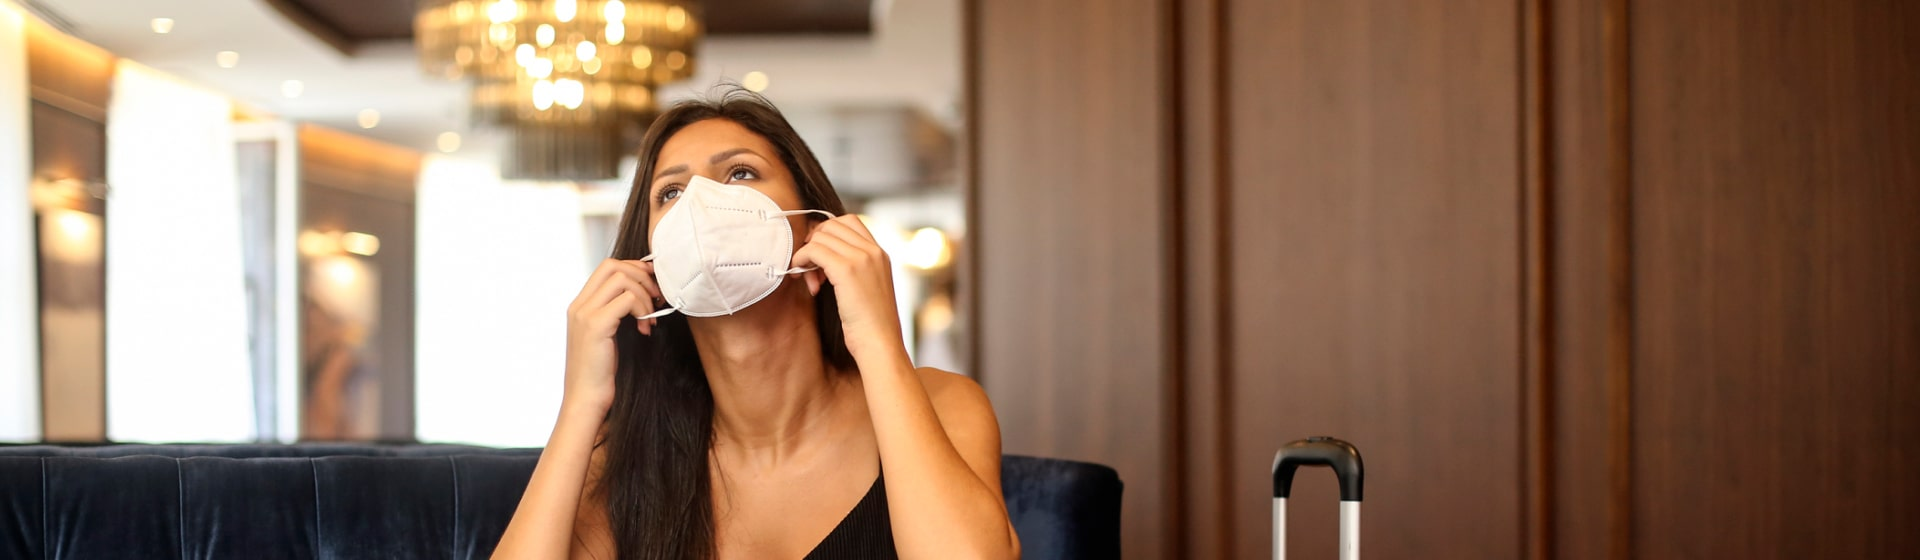 A woman dons a face mask